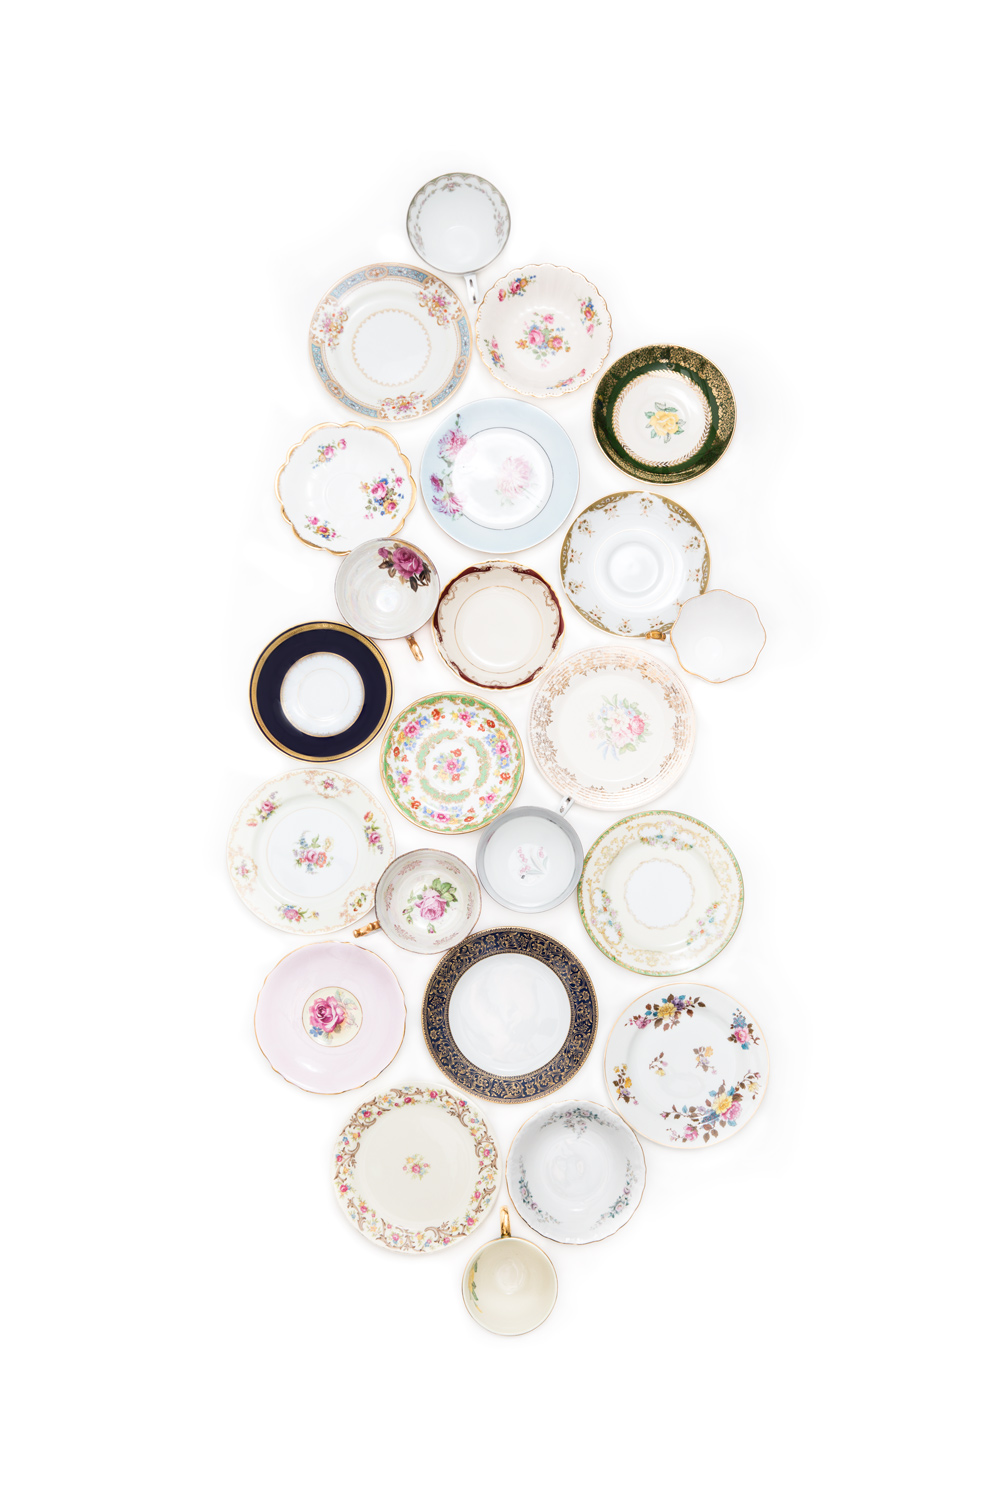 Mix and match vintage china plates from Not My Dish, #WeddingMinimalismProject by Cavin Elizabeth Photography